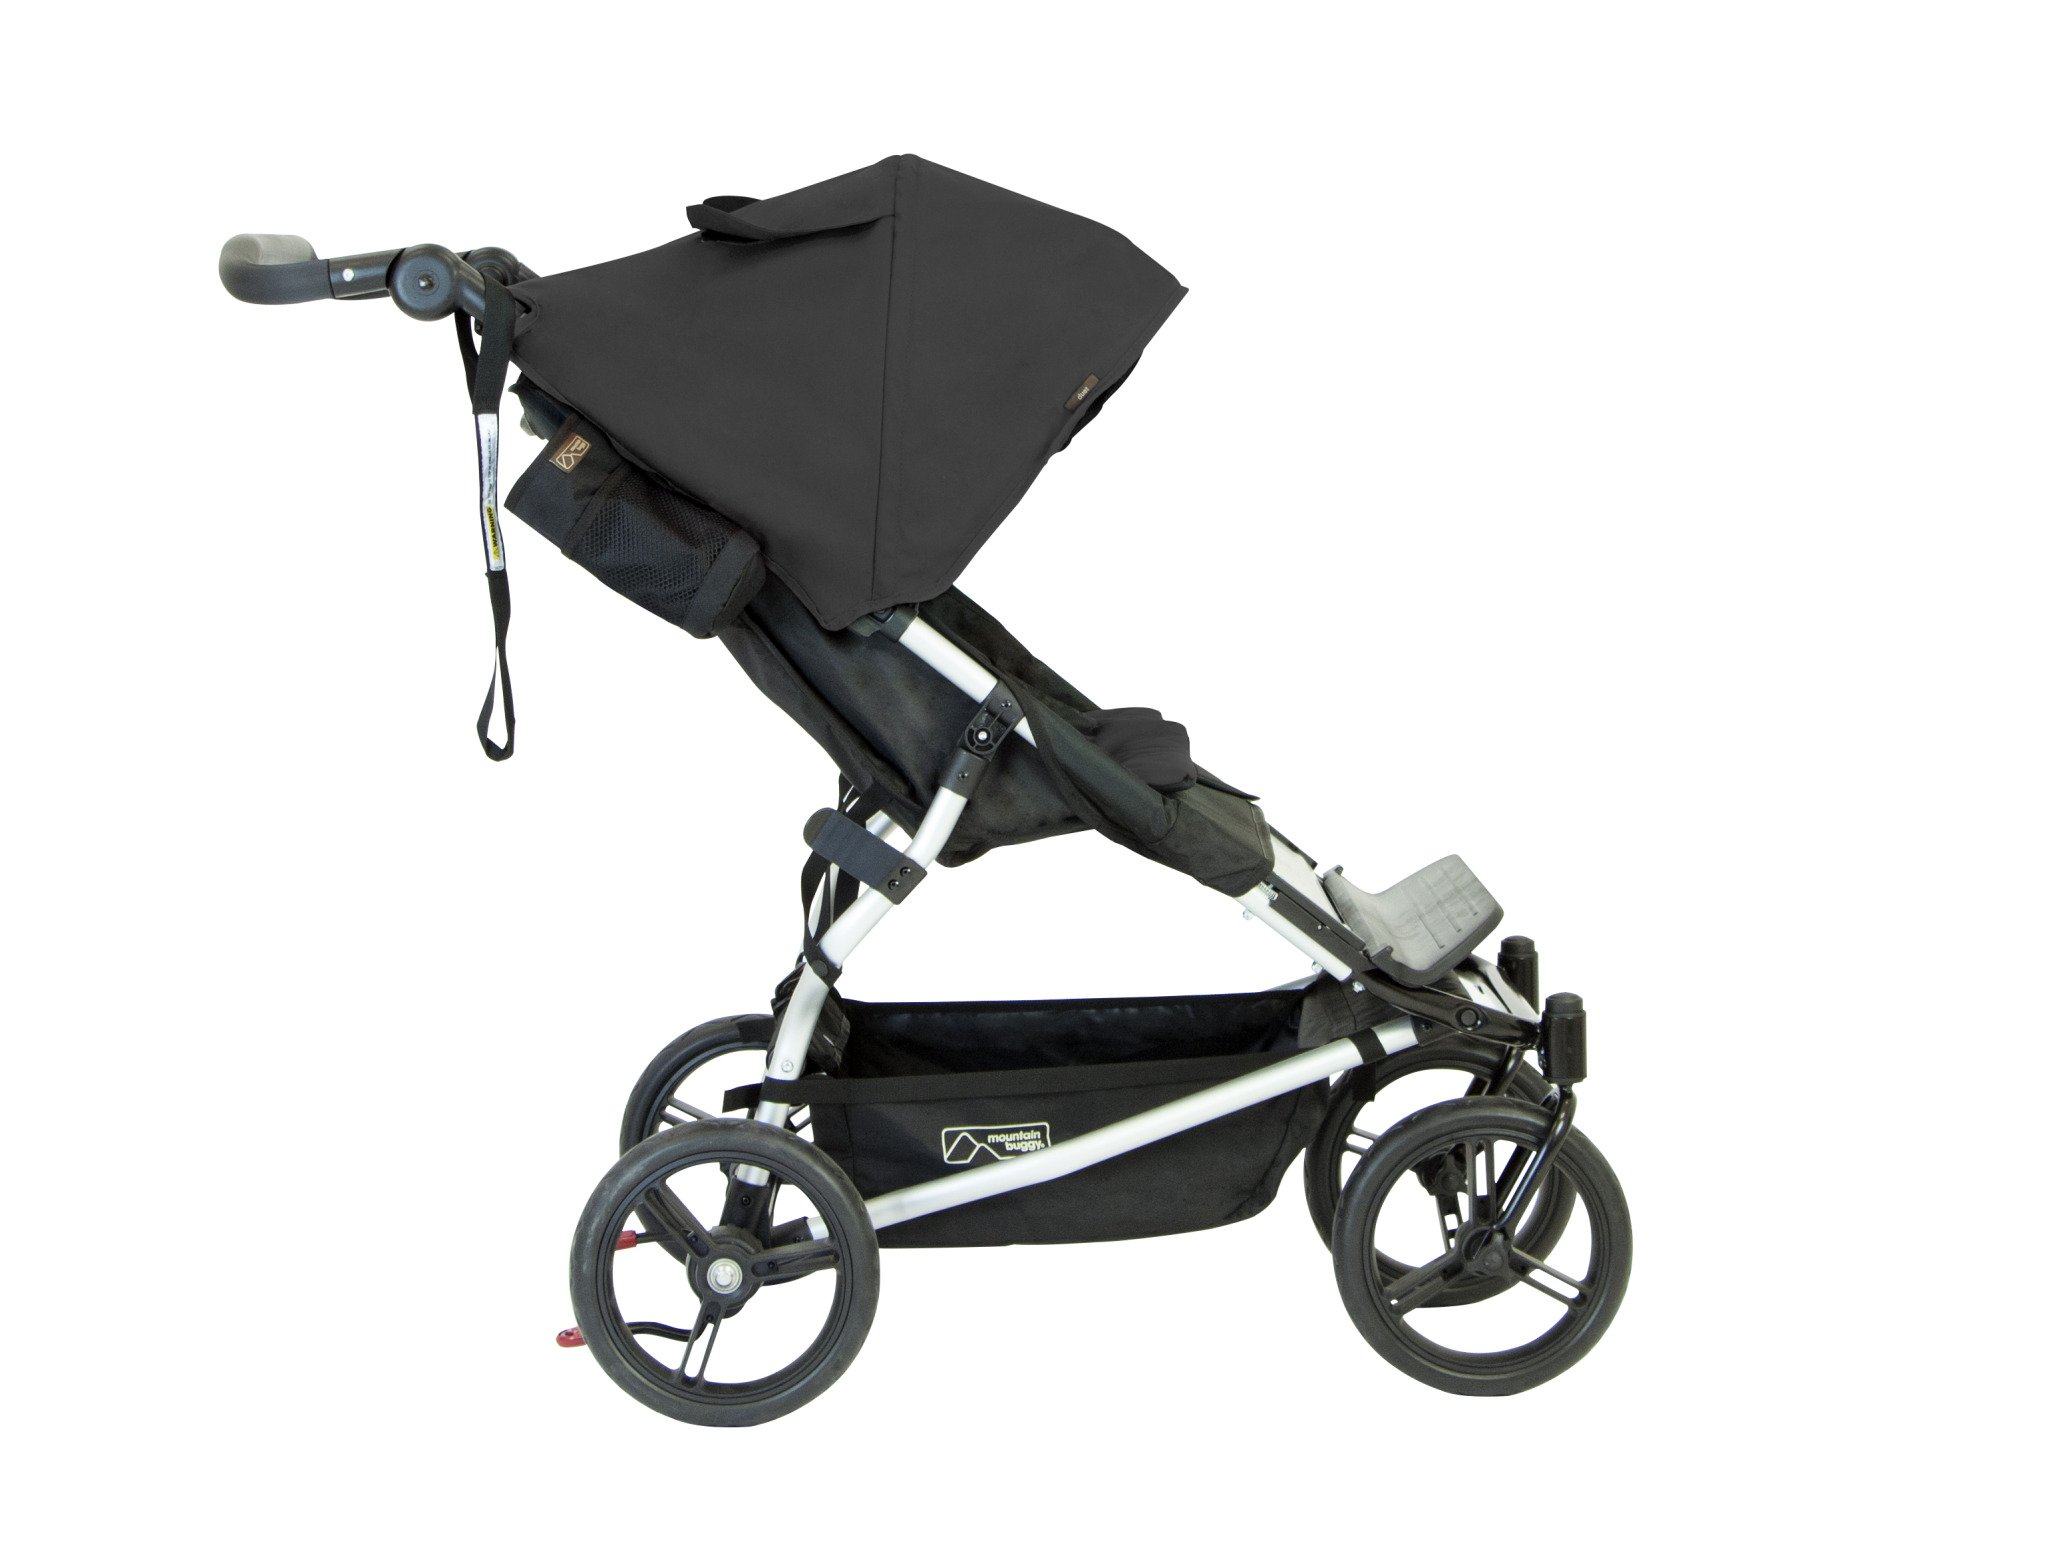 Mountain Buggy Duet 2016 Double Stroller, Black by Mountain Buggy (Image #2)